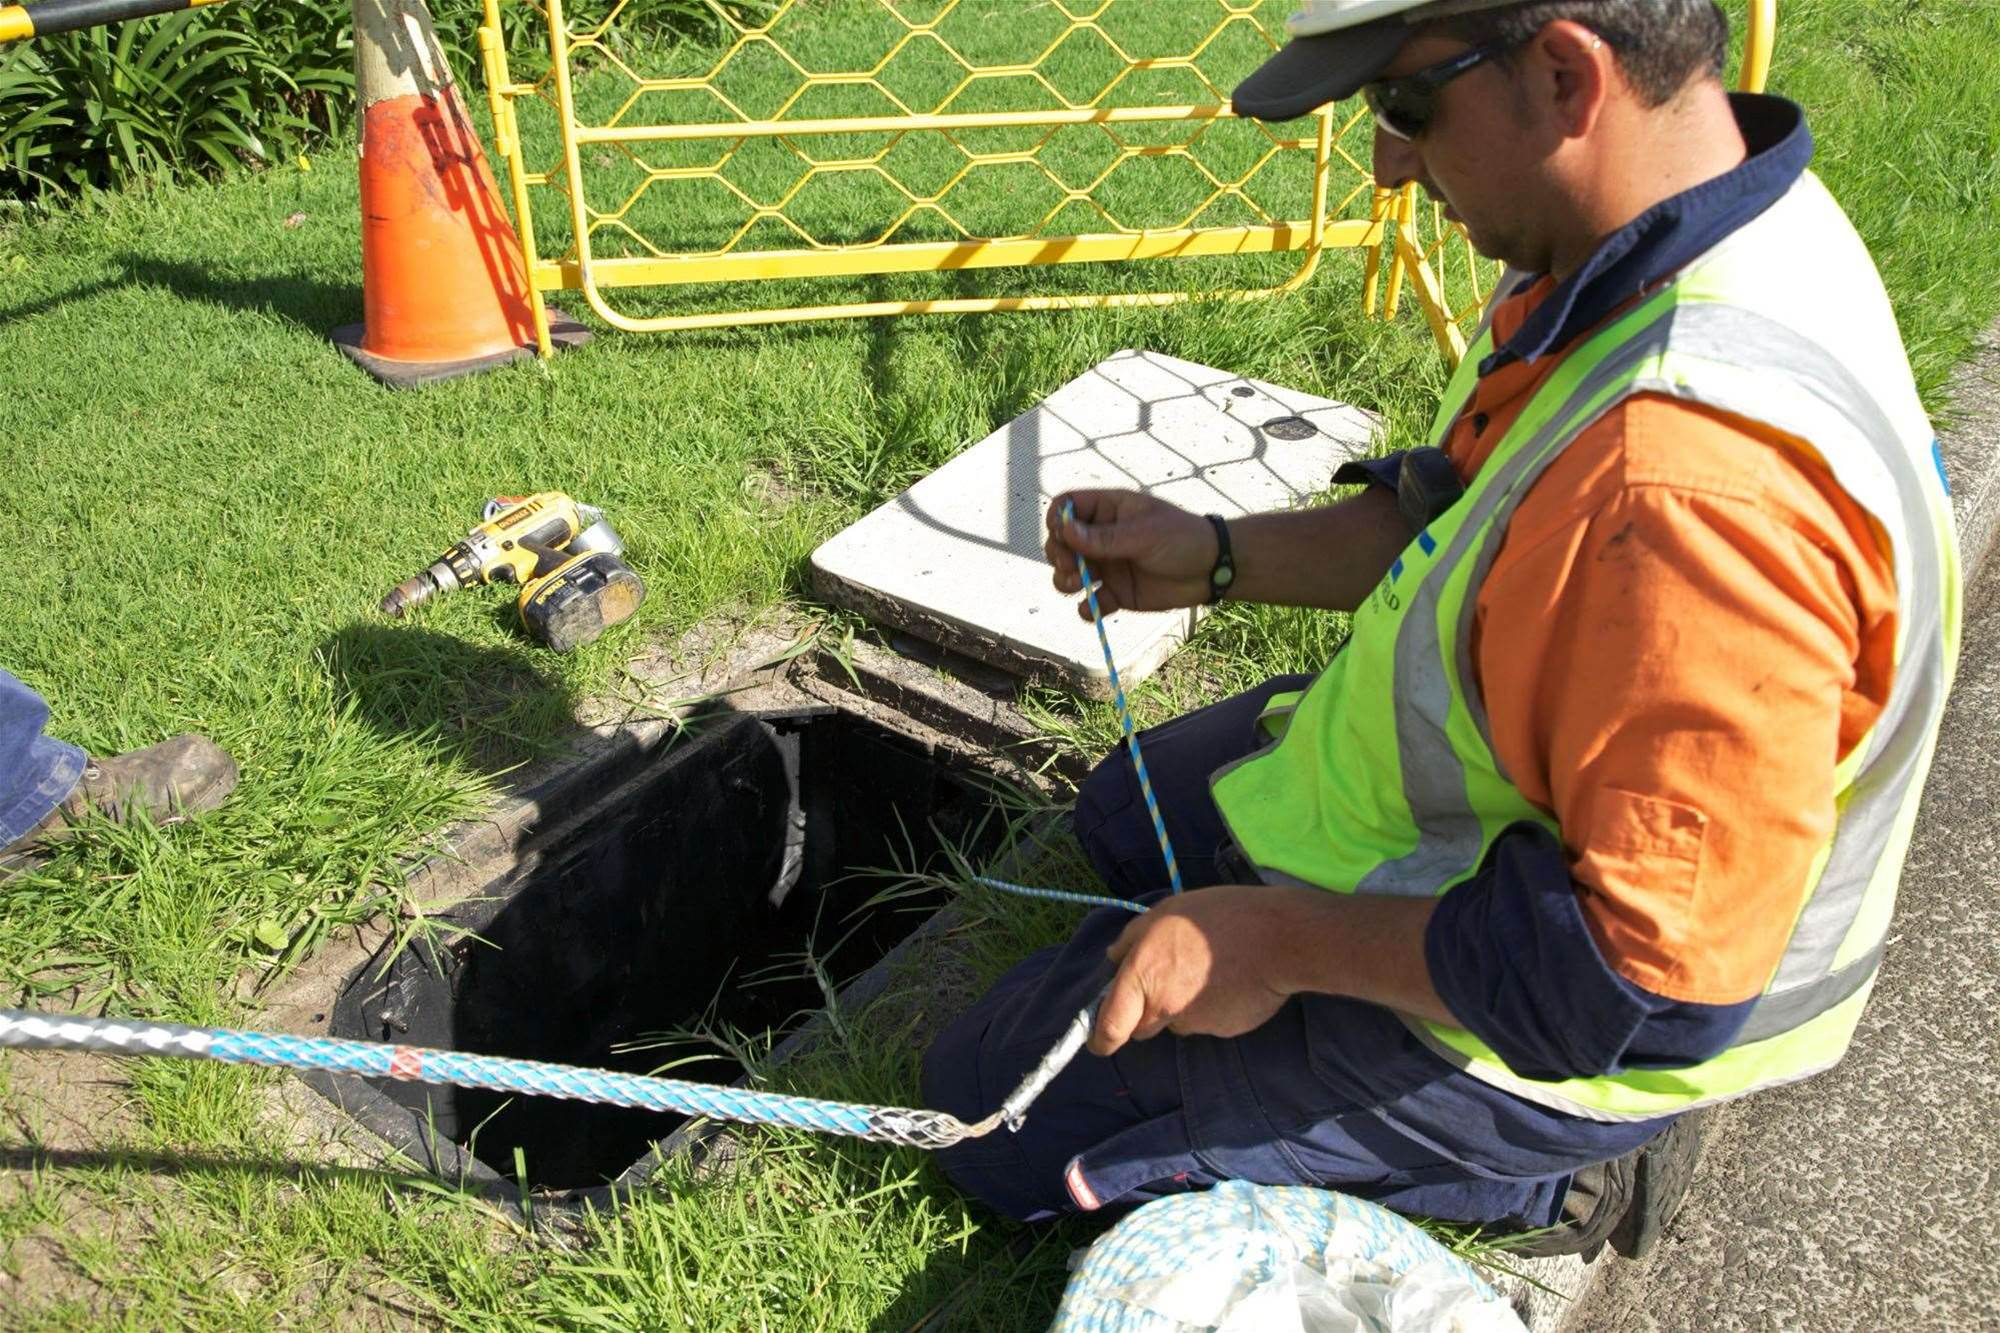 NBN Co losses climb as rollout steps up